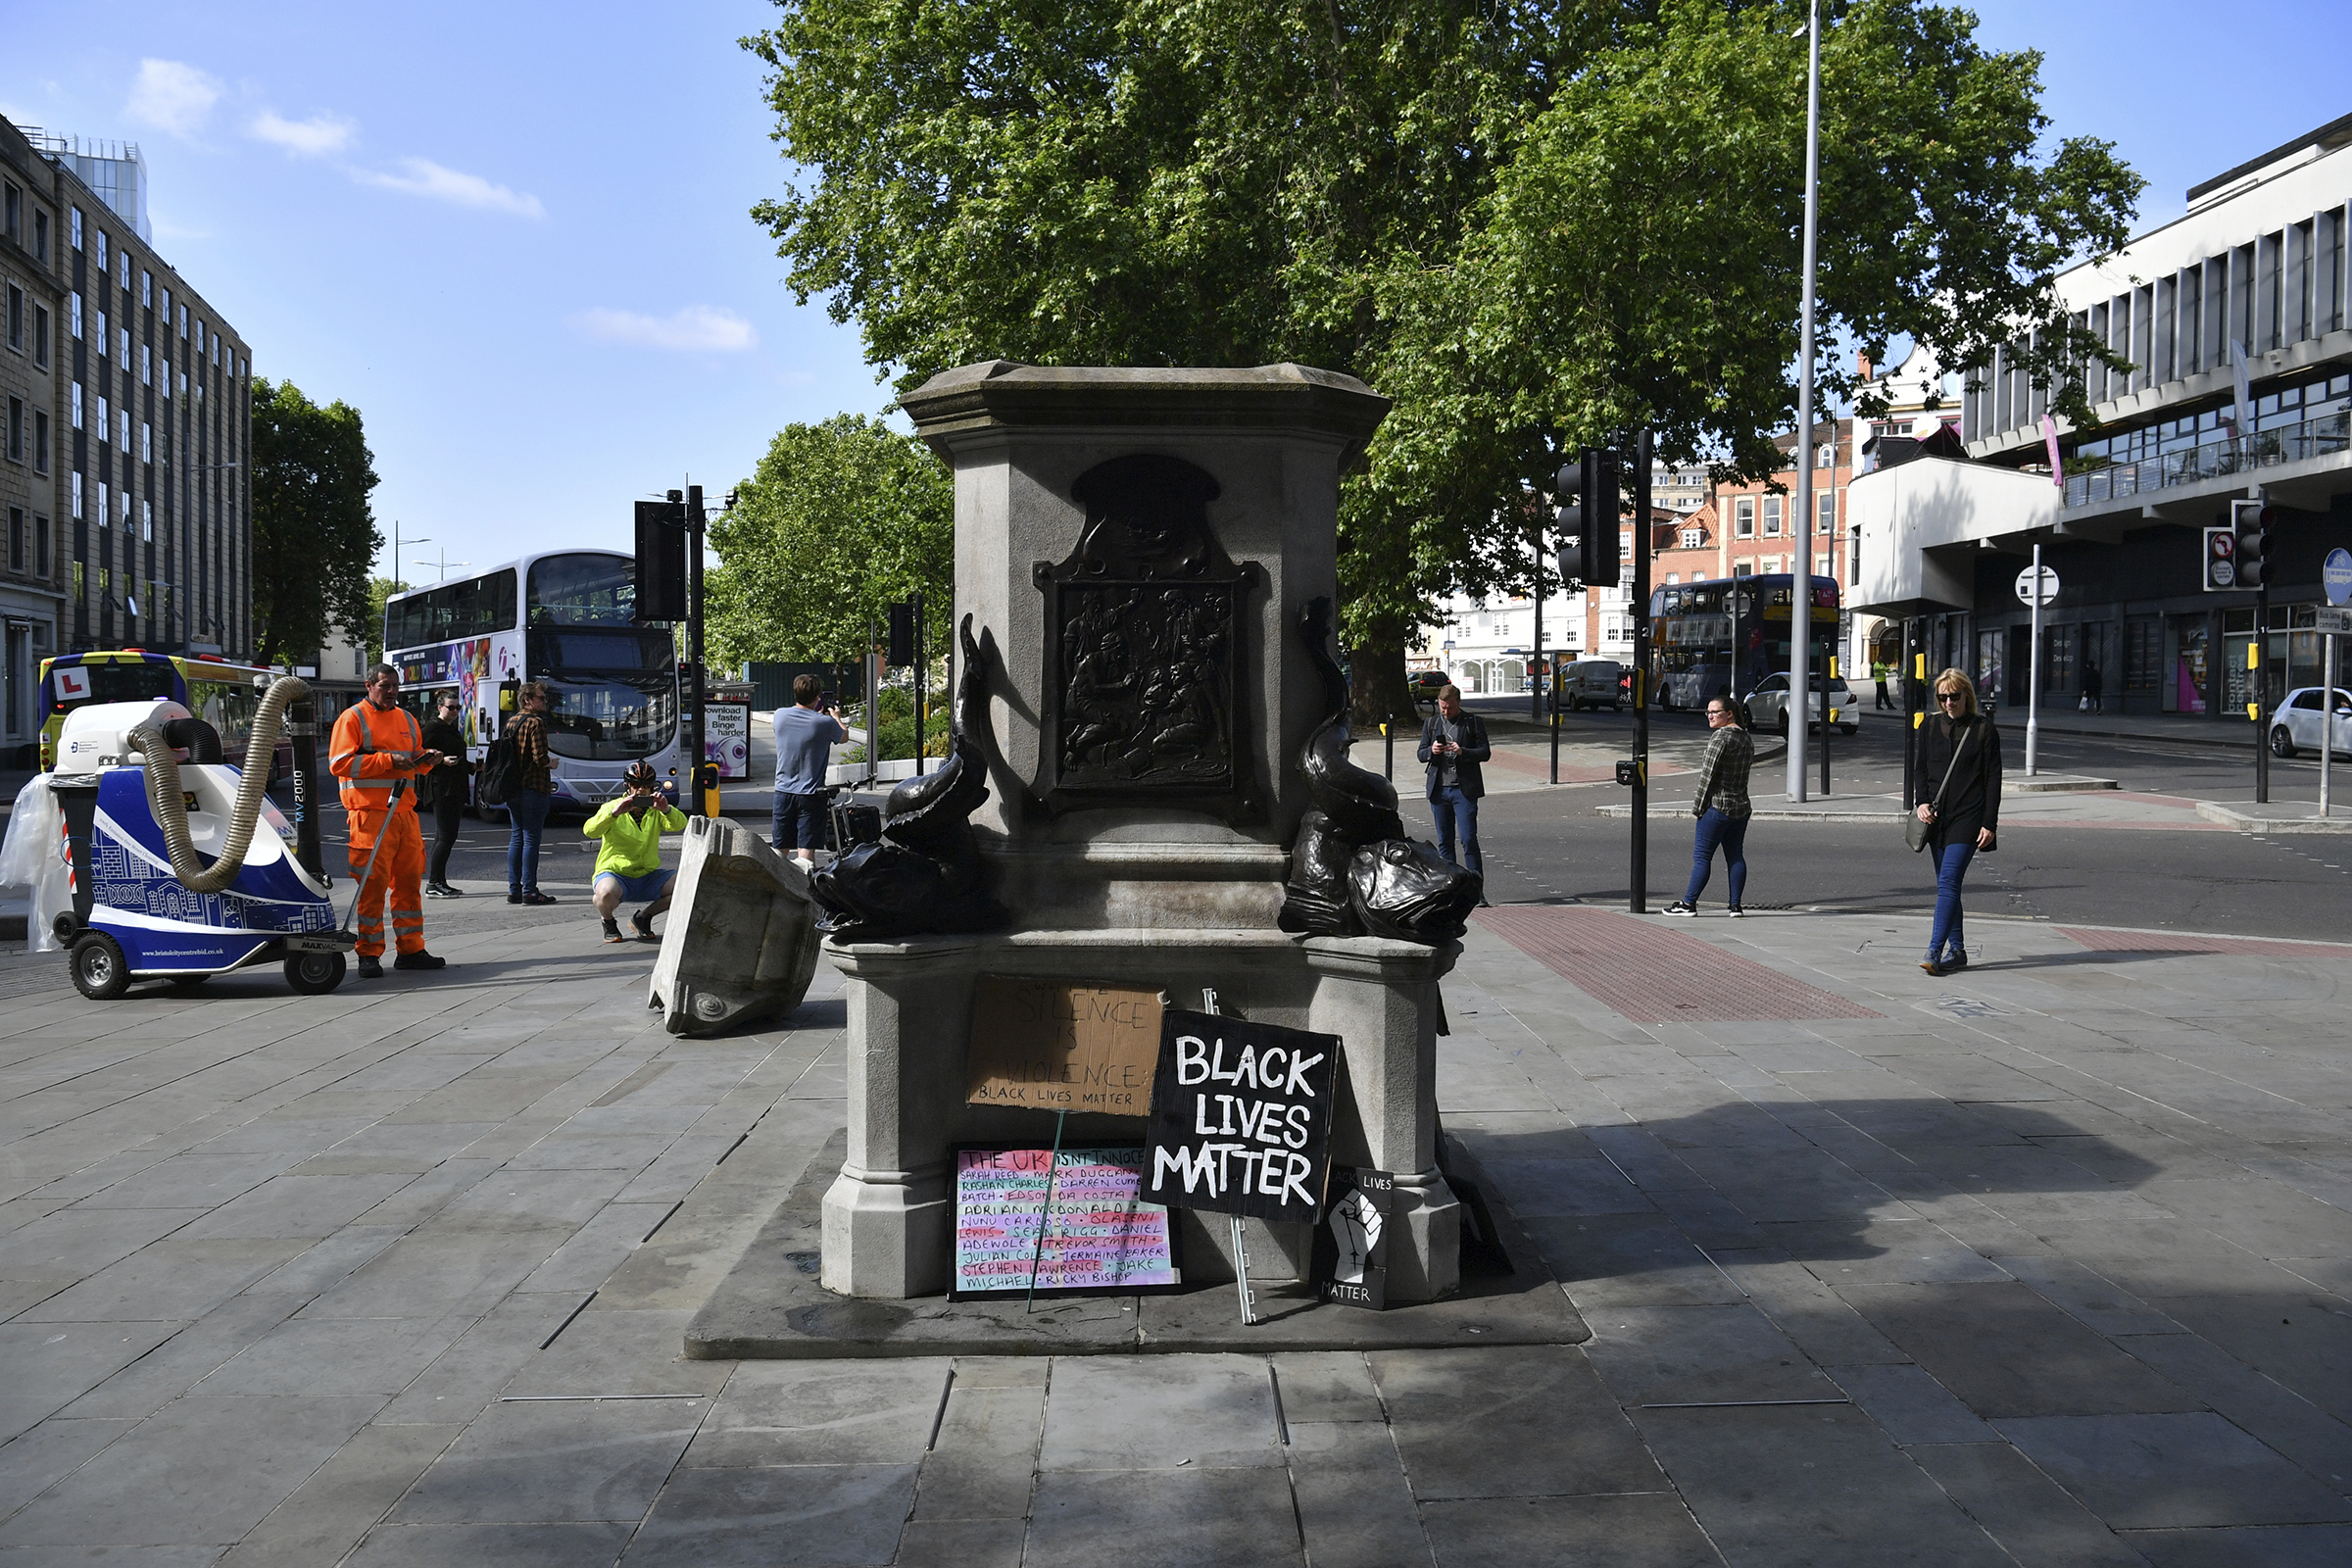 The empty plinth where the statue of Edward Colston once stood after it was taken down during a Black Lives Matter protest on Sunday, seen here on June 8, 2020 in Bristol, England.